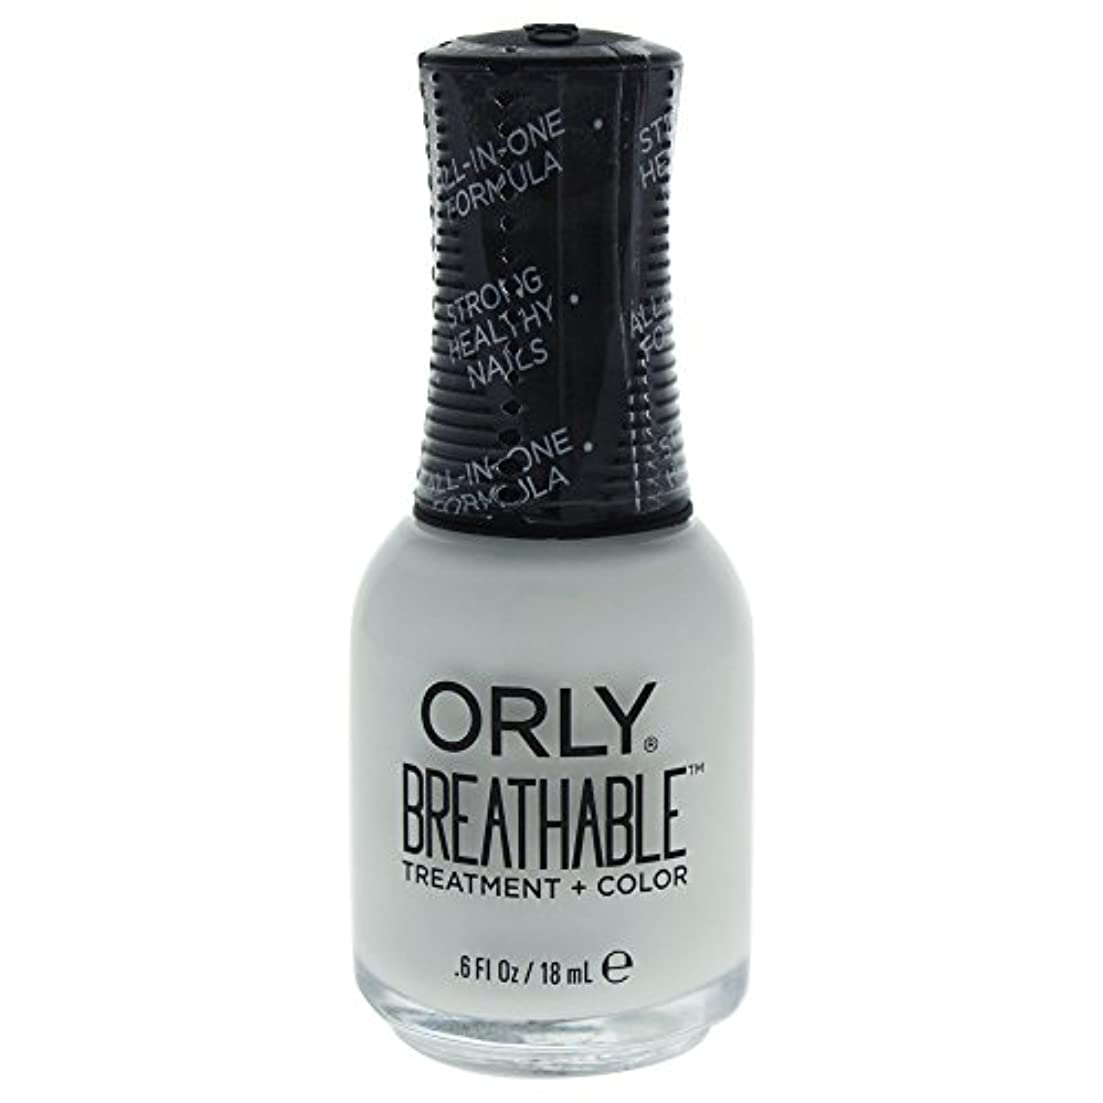 Orly Breathable Treatment + Color Nail Lacquer - White Tips - 0.6oz / 18ml